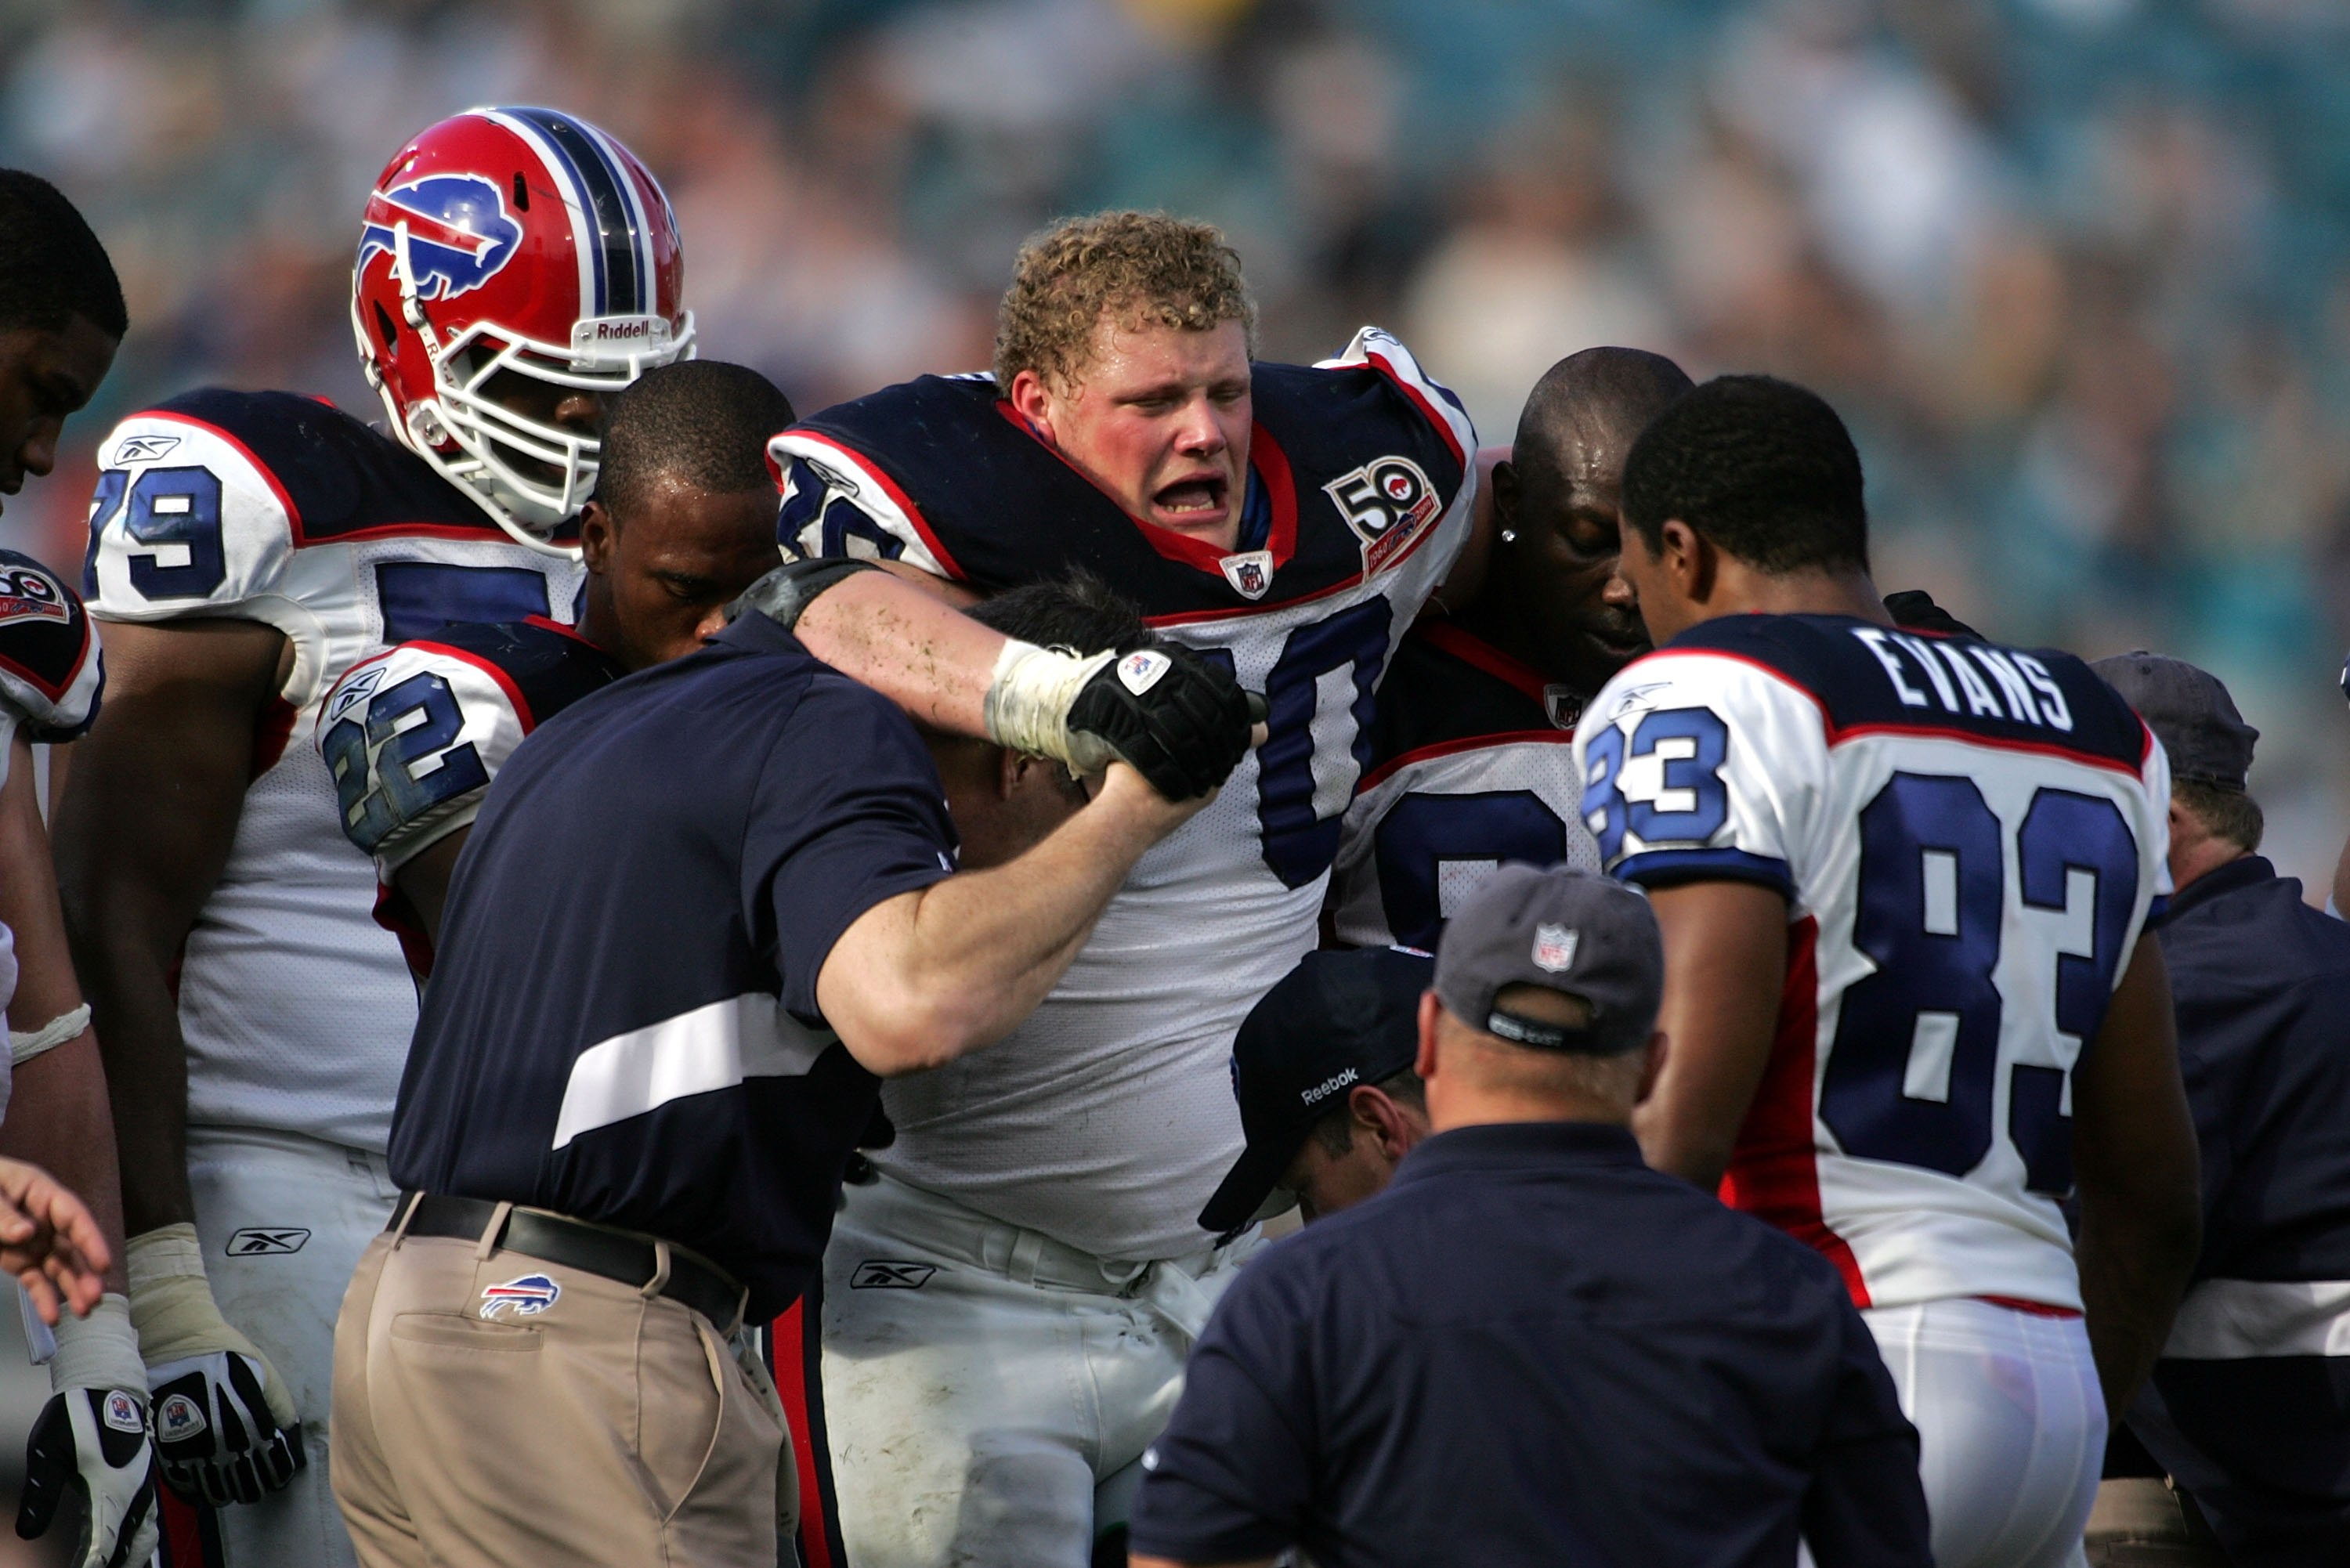 JACKSONVILLE, FL - NOVEMBER 22:  Guard Eric Wood of the Buffalo Bills gets carried off the field injured against the Jacksonville Jaguars at Jacksonville Municipal Stadium on November 22, 2009 in Jacksonville, Florida.  (Photo by Marc Serota/Getty Images)